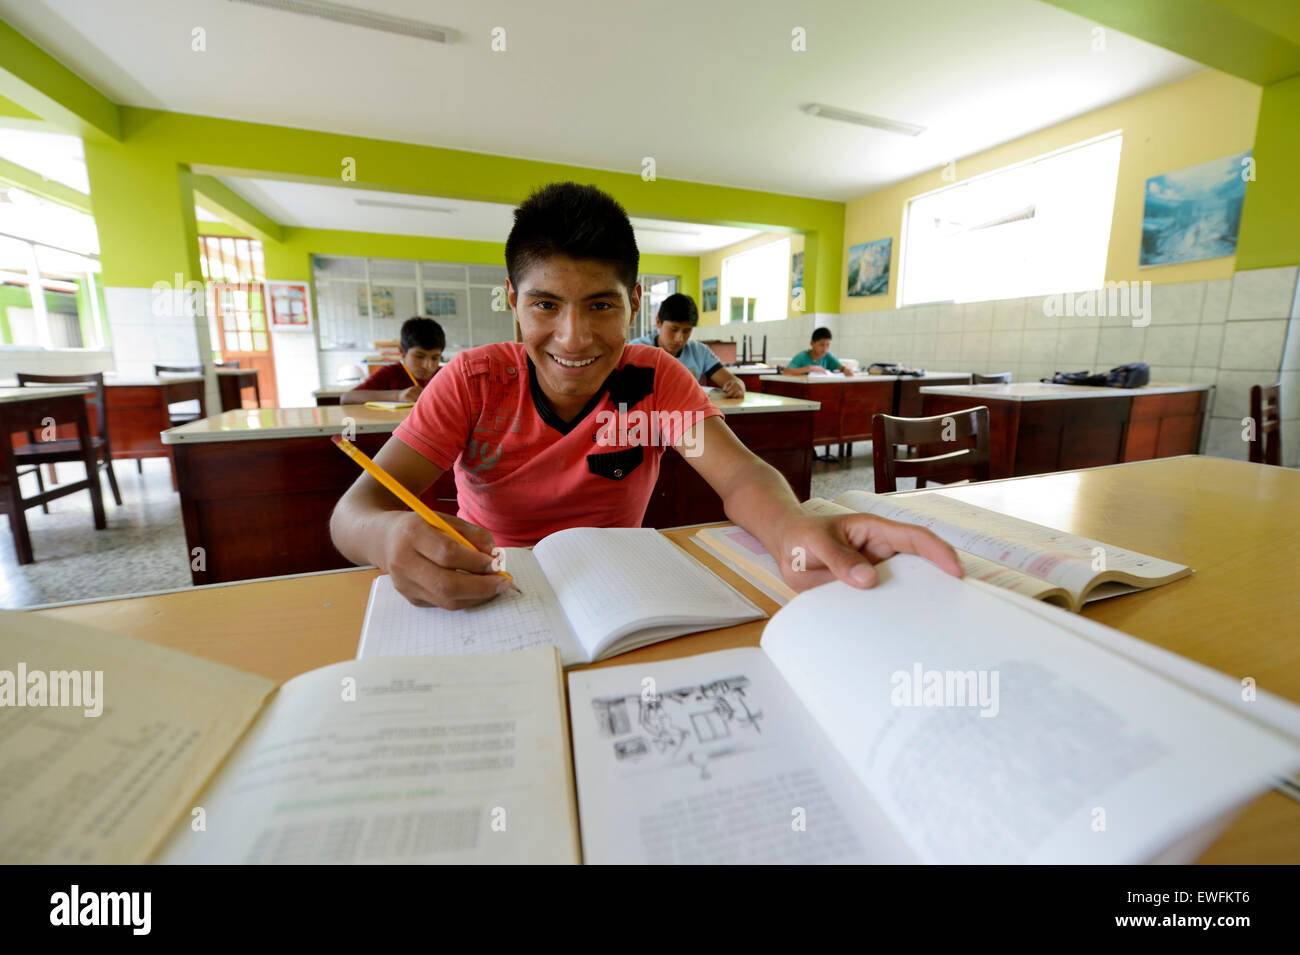 Student, teenager, 15 years, in a classroom, Brena, Lima, Peru - Stock Image